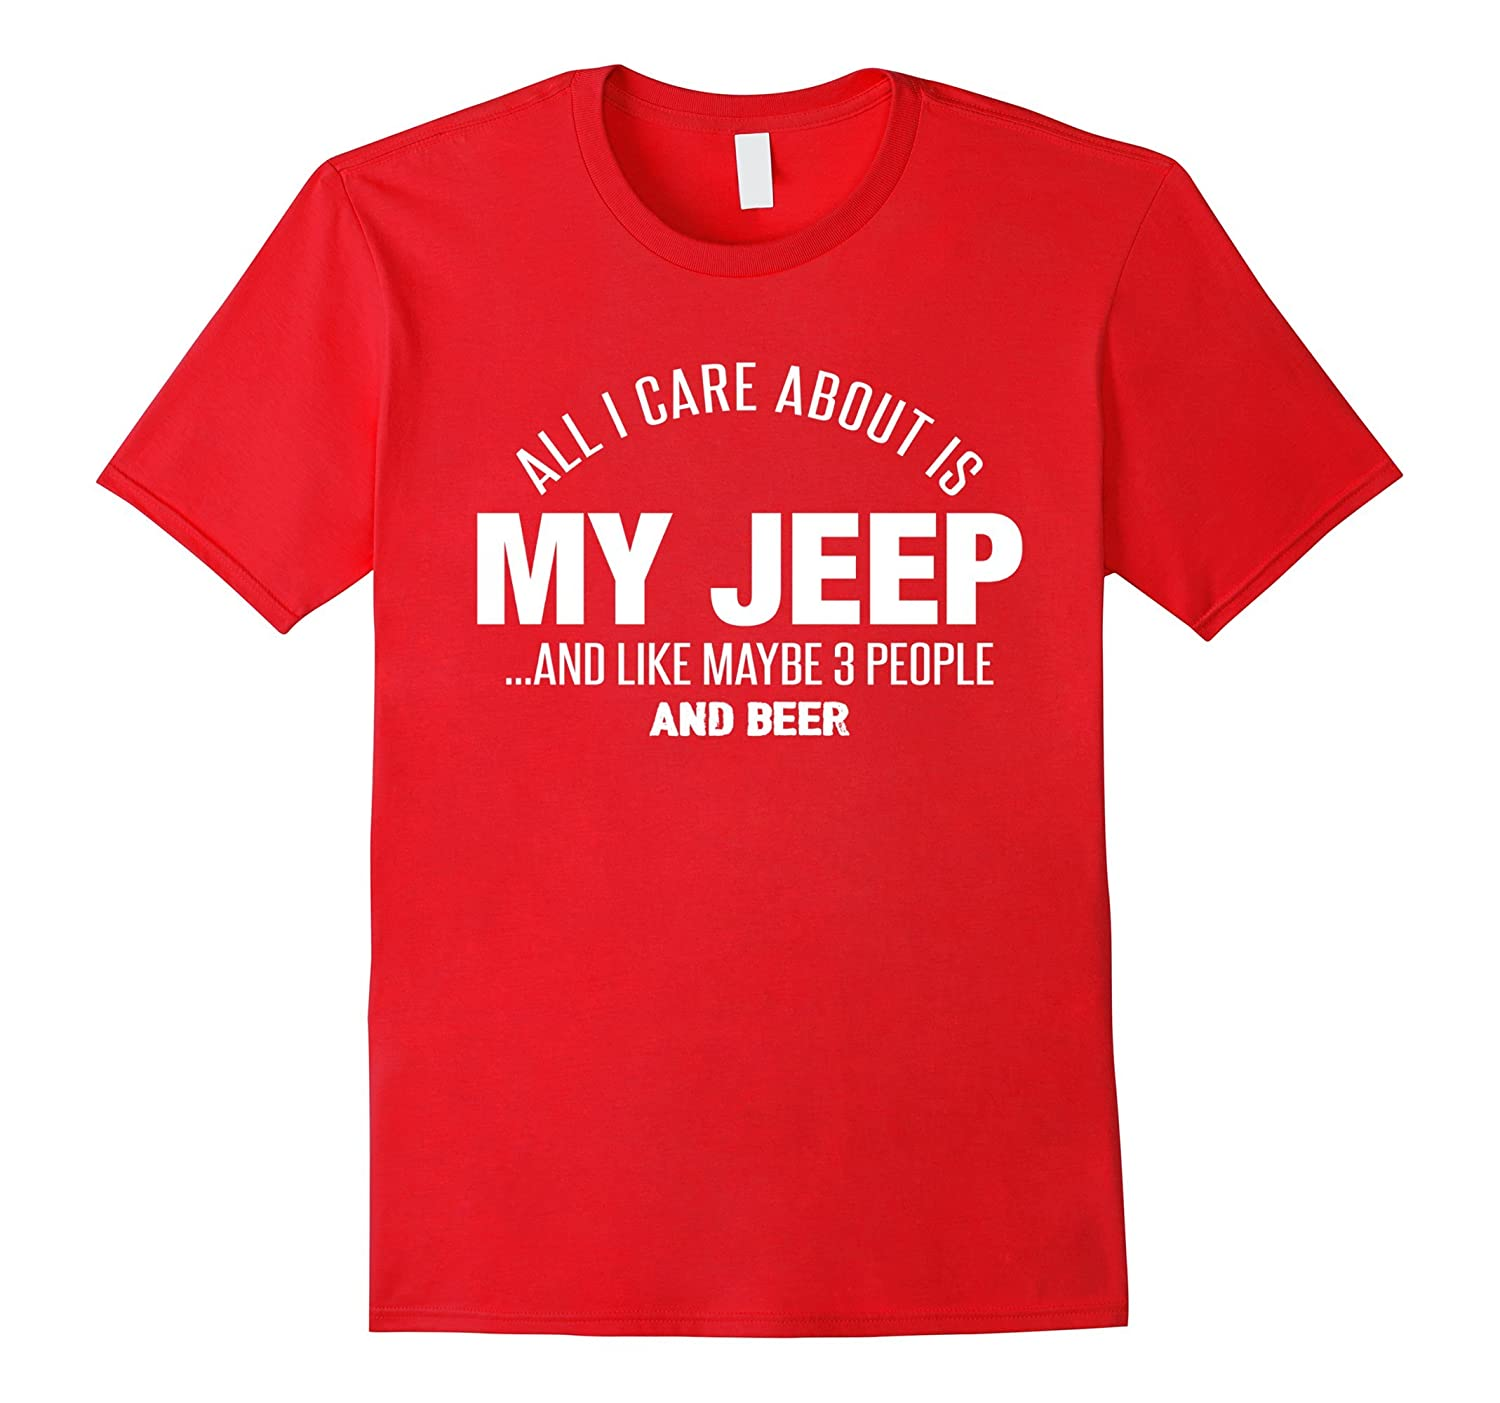 All I care about is my jeep and like maybe 3 people and beer-CL